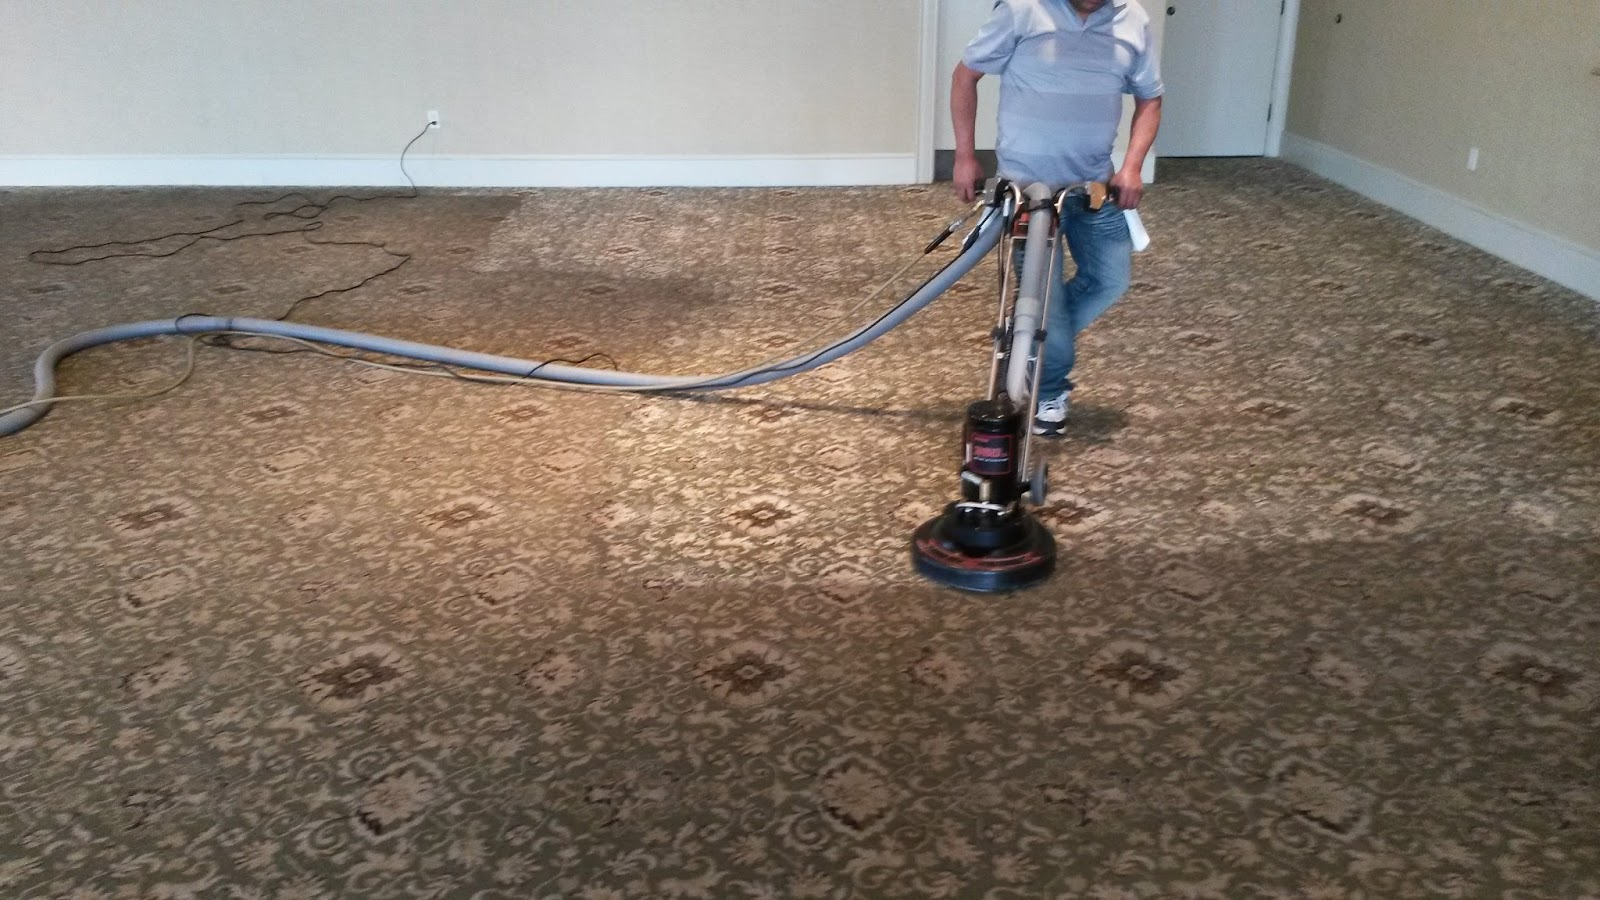 Rotovac Carpet Cleaning Carpet Vidalondon